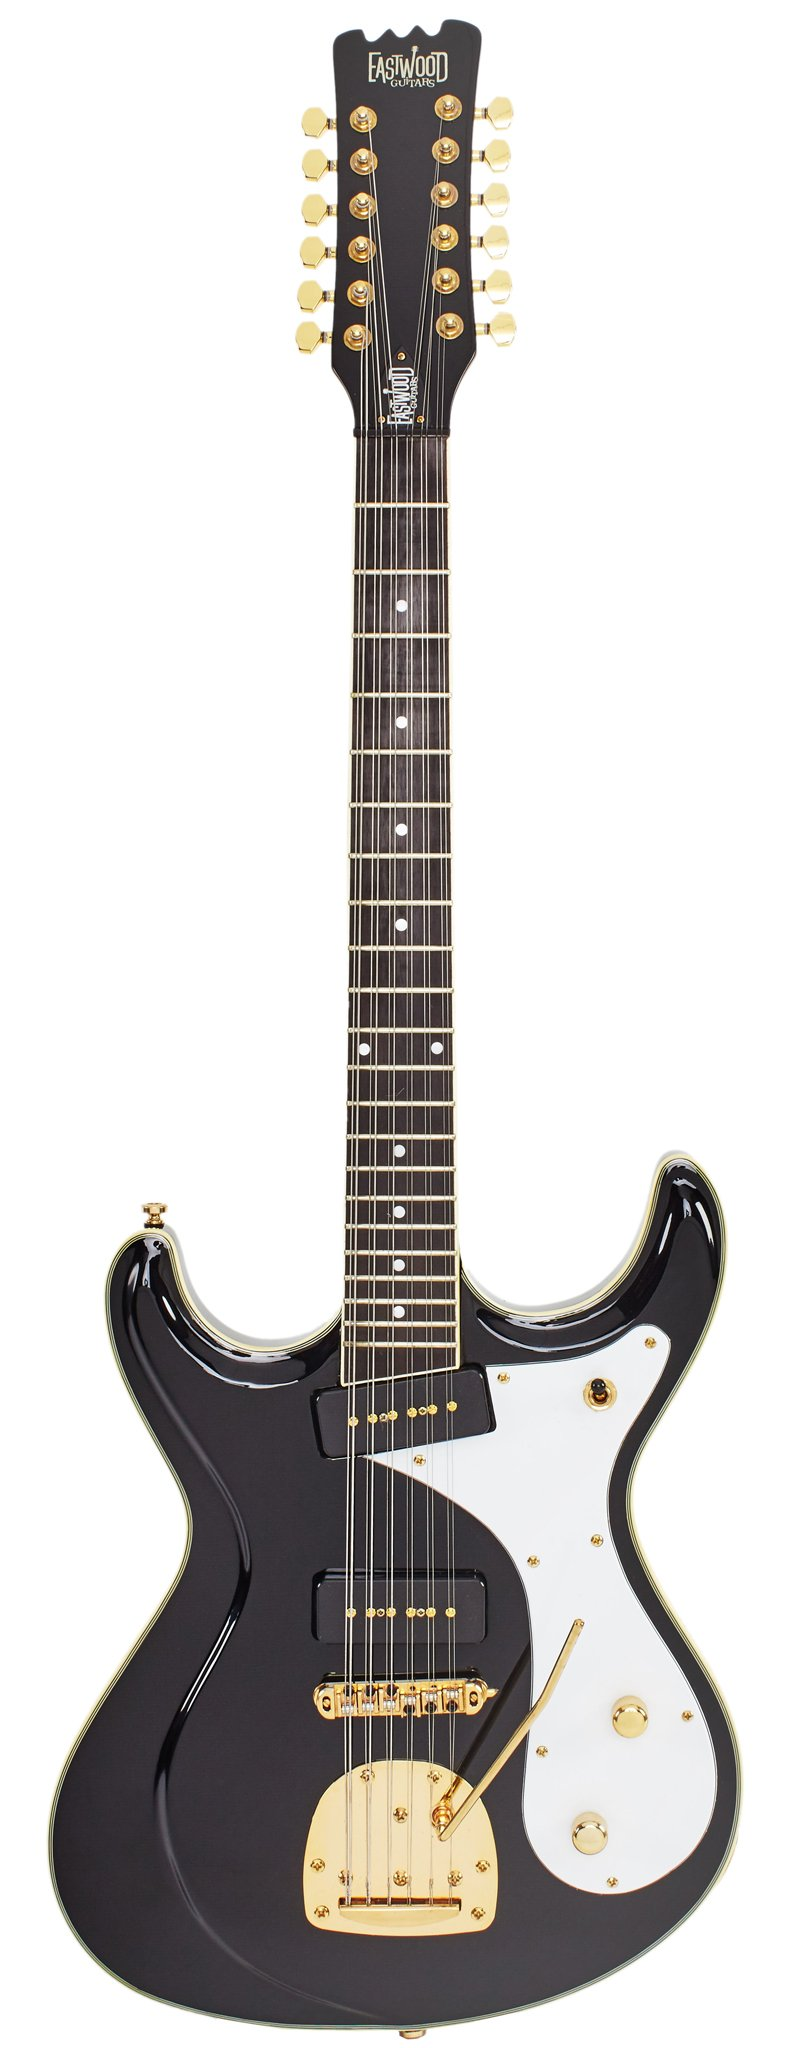 Eastwood Guitars Sidejack 12 DLX Black and Gold Full Front